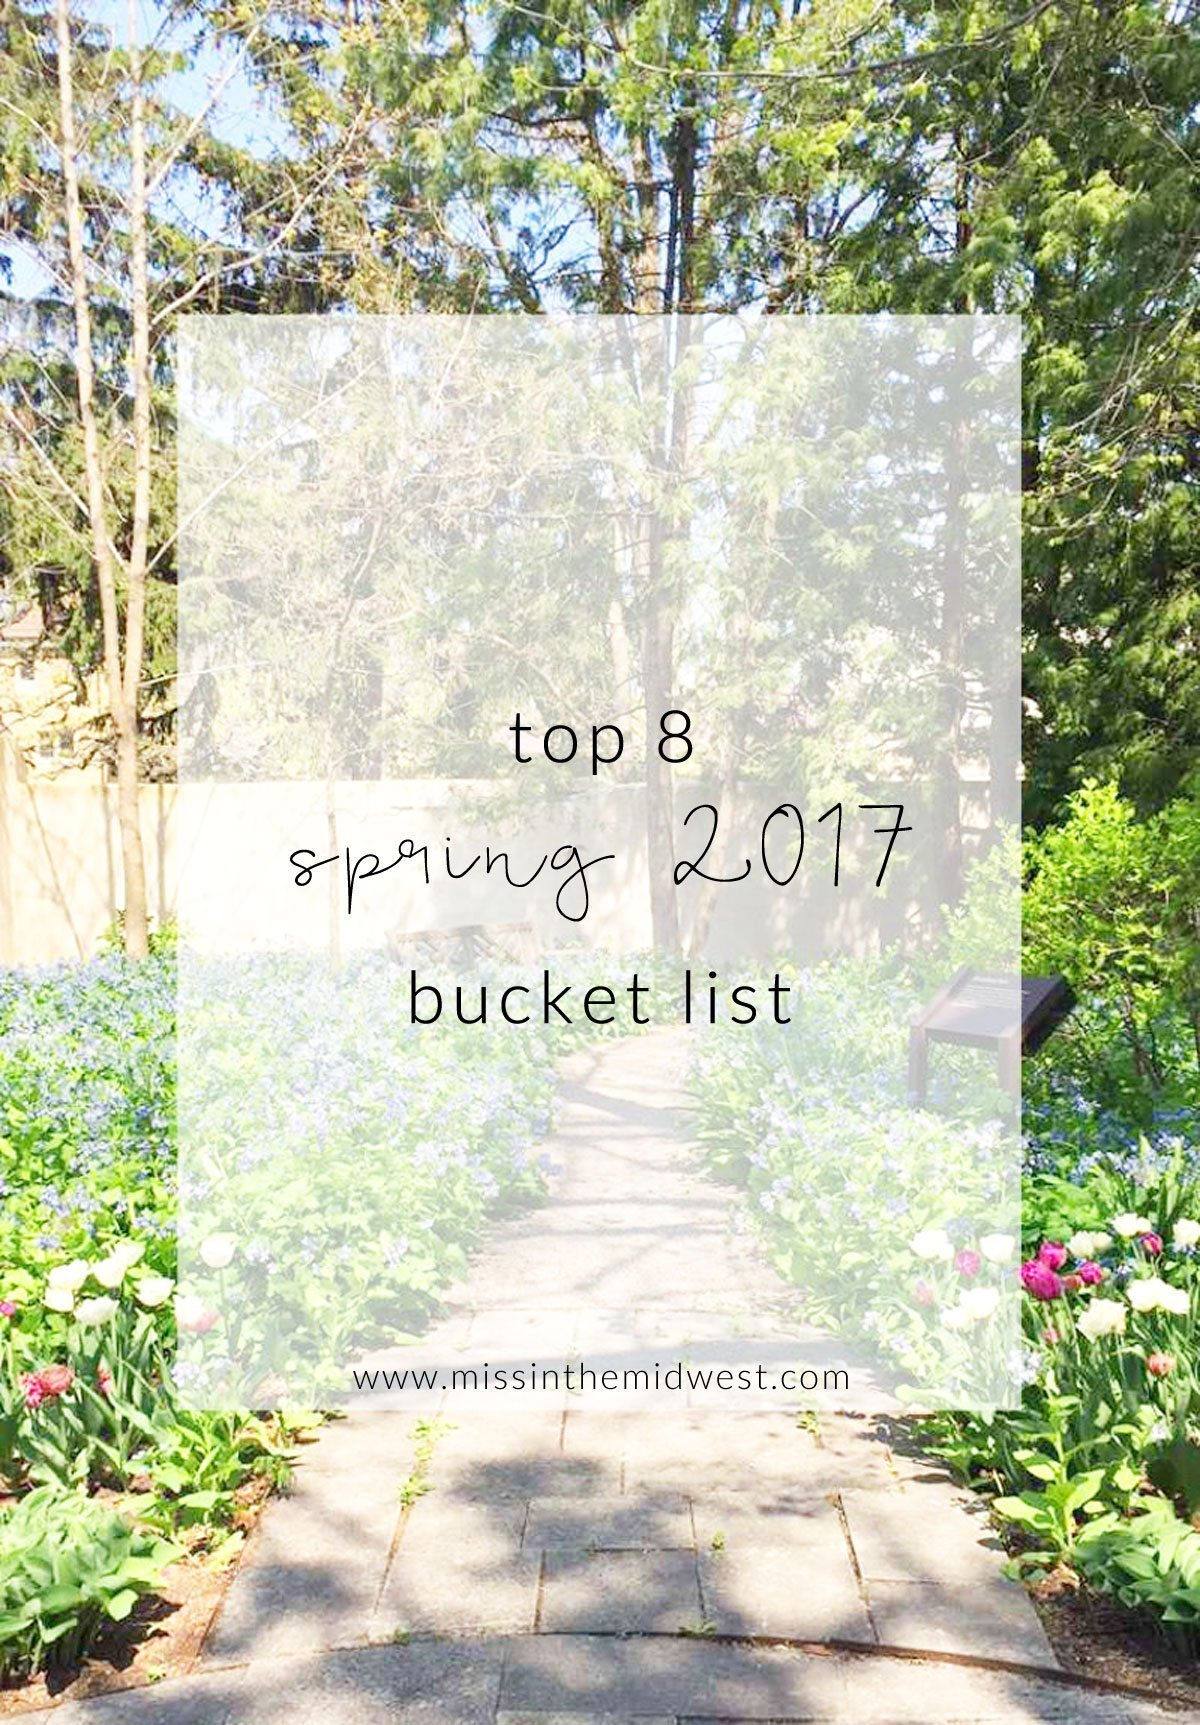 Top 8 Spring 2017 Bucket List